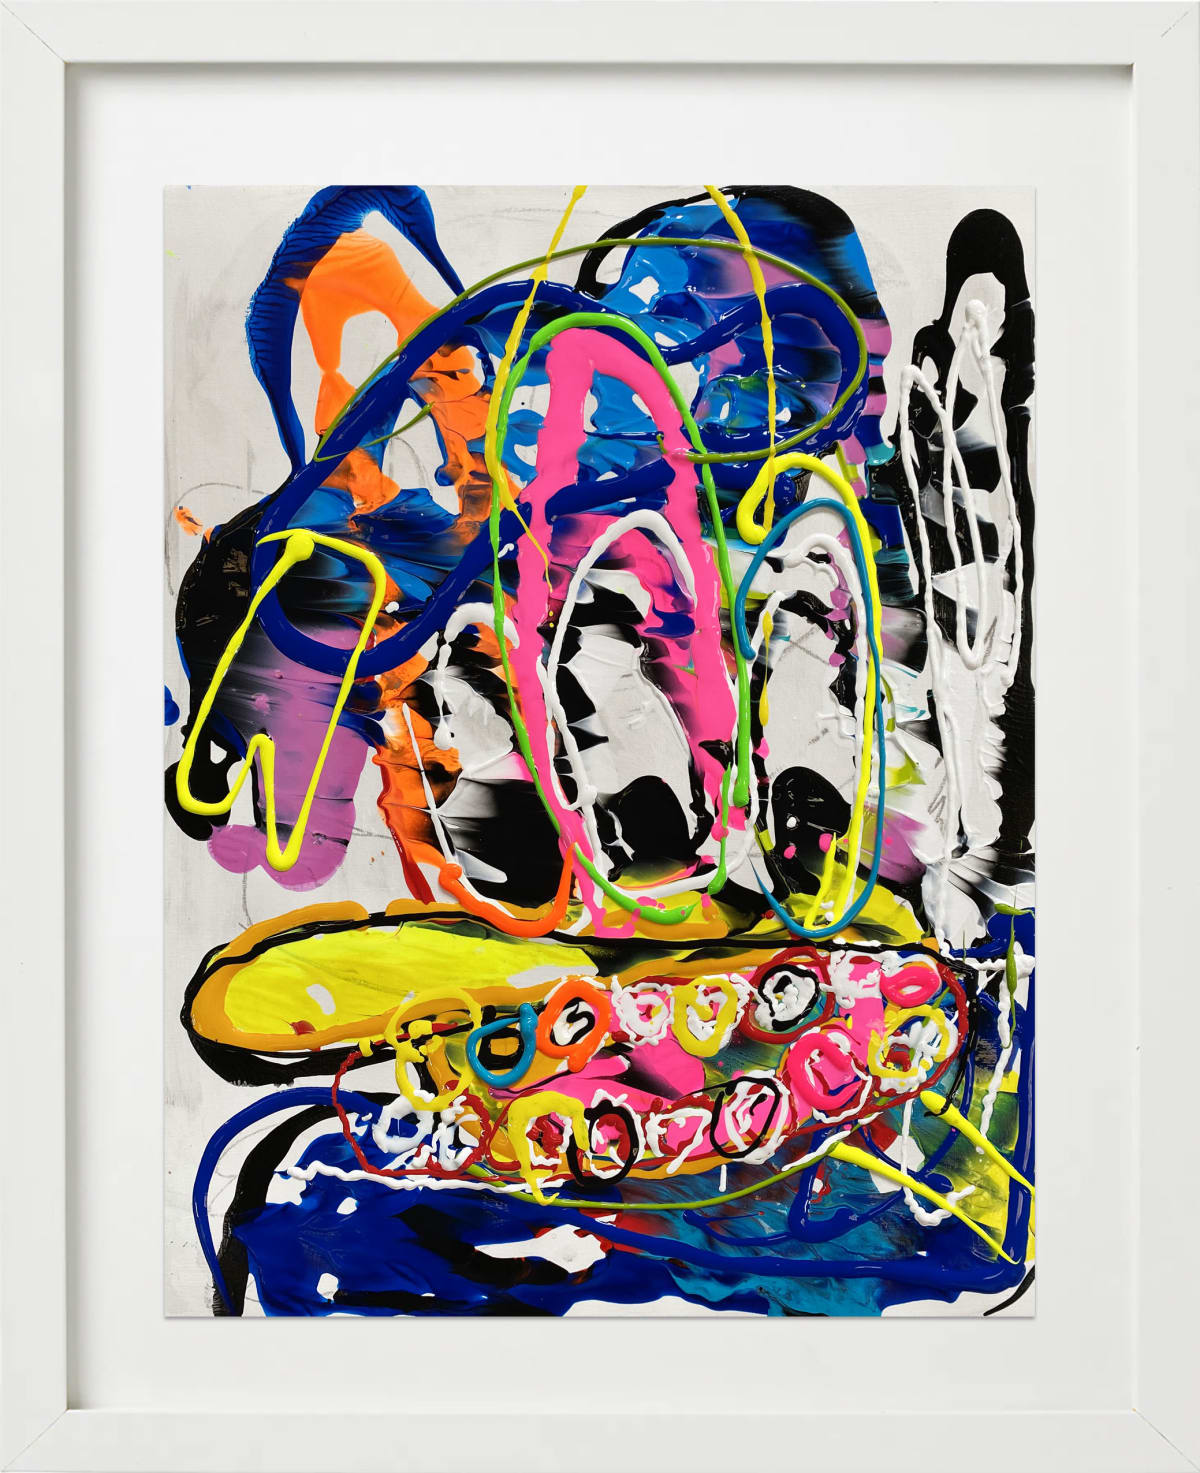 The Wise Little Duck No 2 by John Paul Fauves